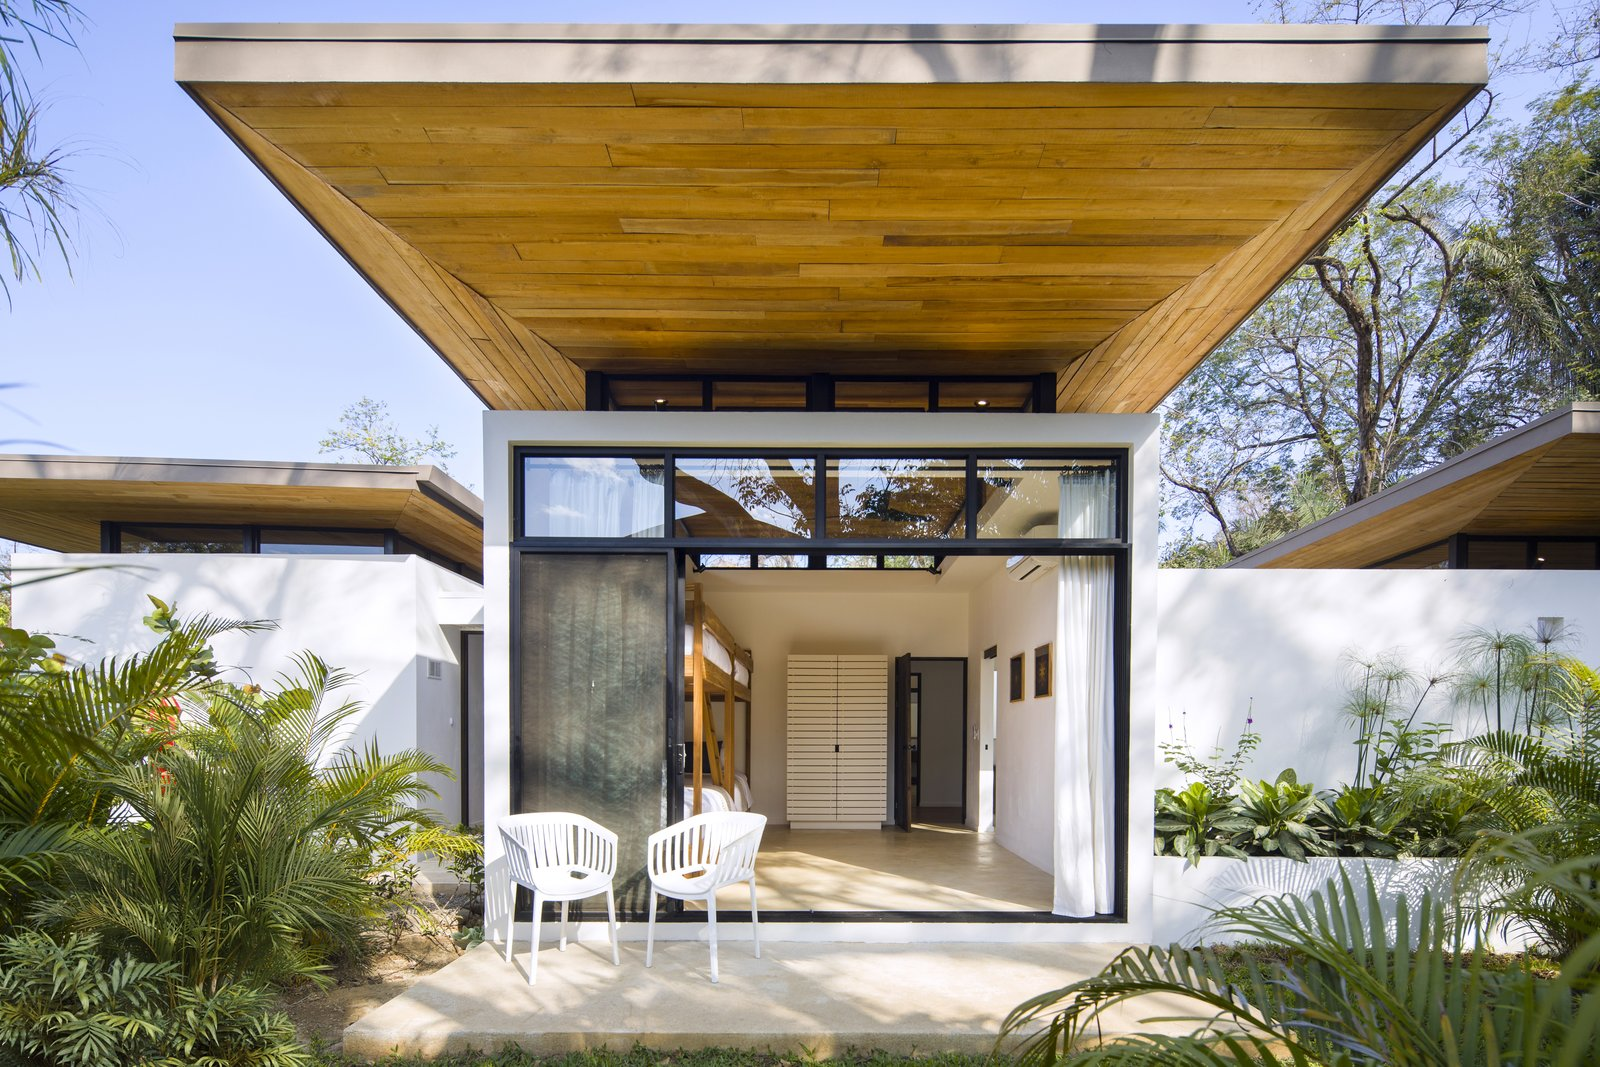 Outdoor, Small Patio, Porch, Deck, Gardens, and Shrubs The underside of the overhanging roof represents the area's local craftsmanship.  Nalu Nosara from Decompress at This Boutique Hotel and Yoga Retreat in the Costa Rican Jungle